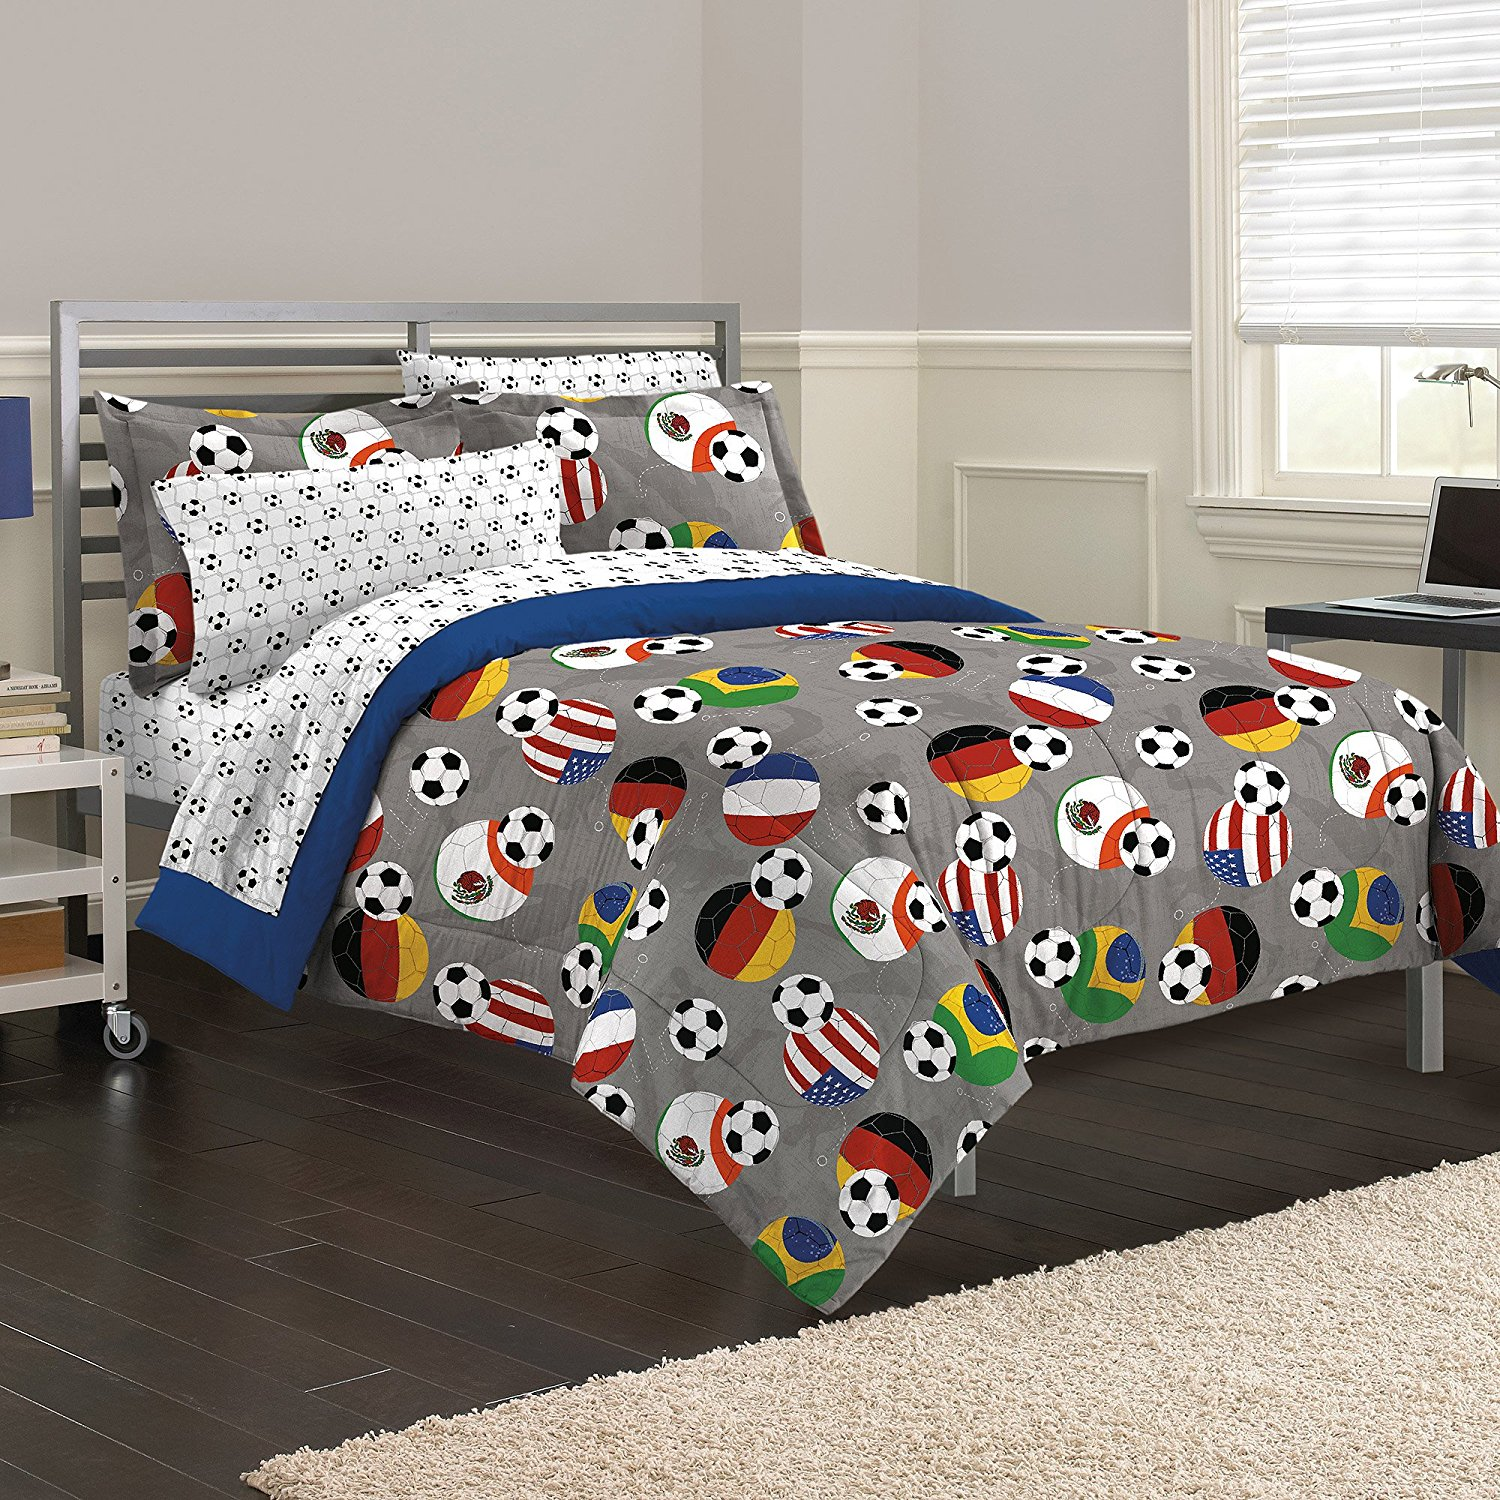 5 Piece Kids Grey Soccer Themed Comforter Twin Set, International Football Bedding Soccerball Sports USA Brazil Germany Mexico France Athletic Red Yellow Green, Reversible Solid Blue Polyester Cotton